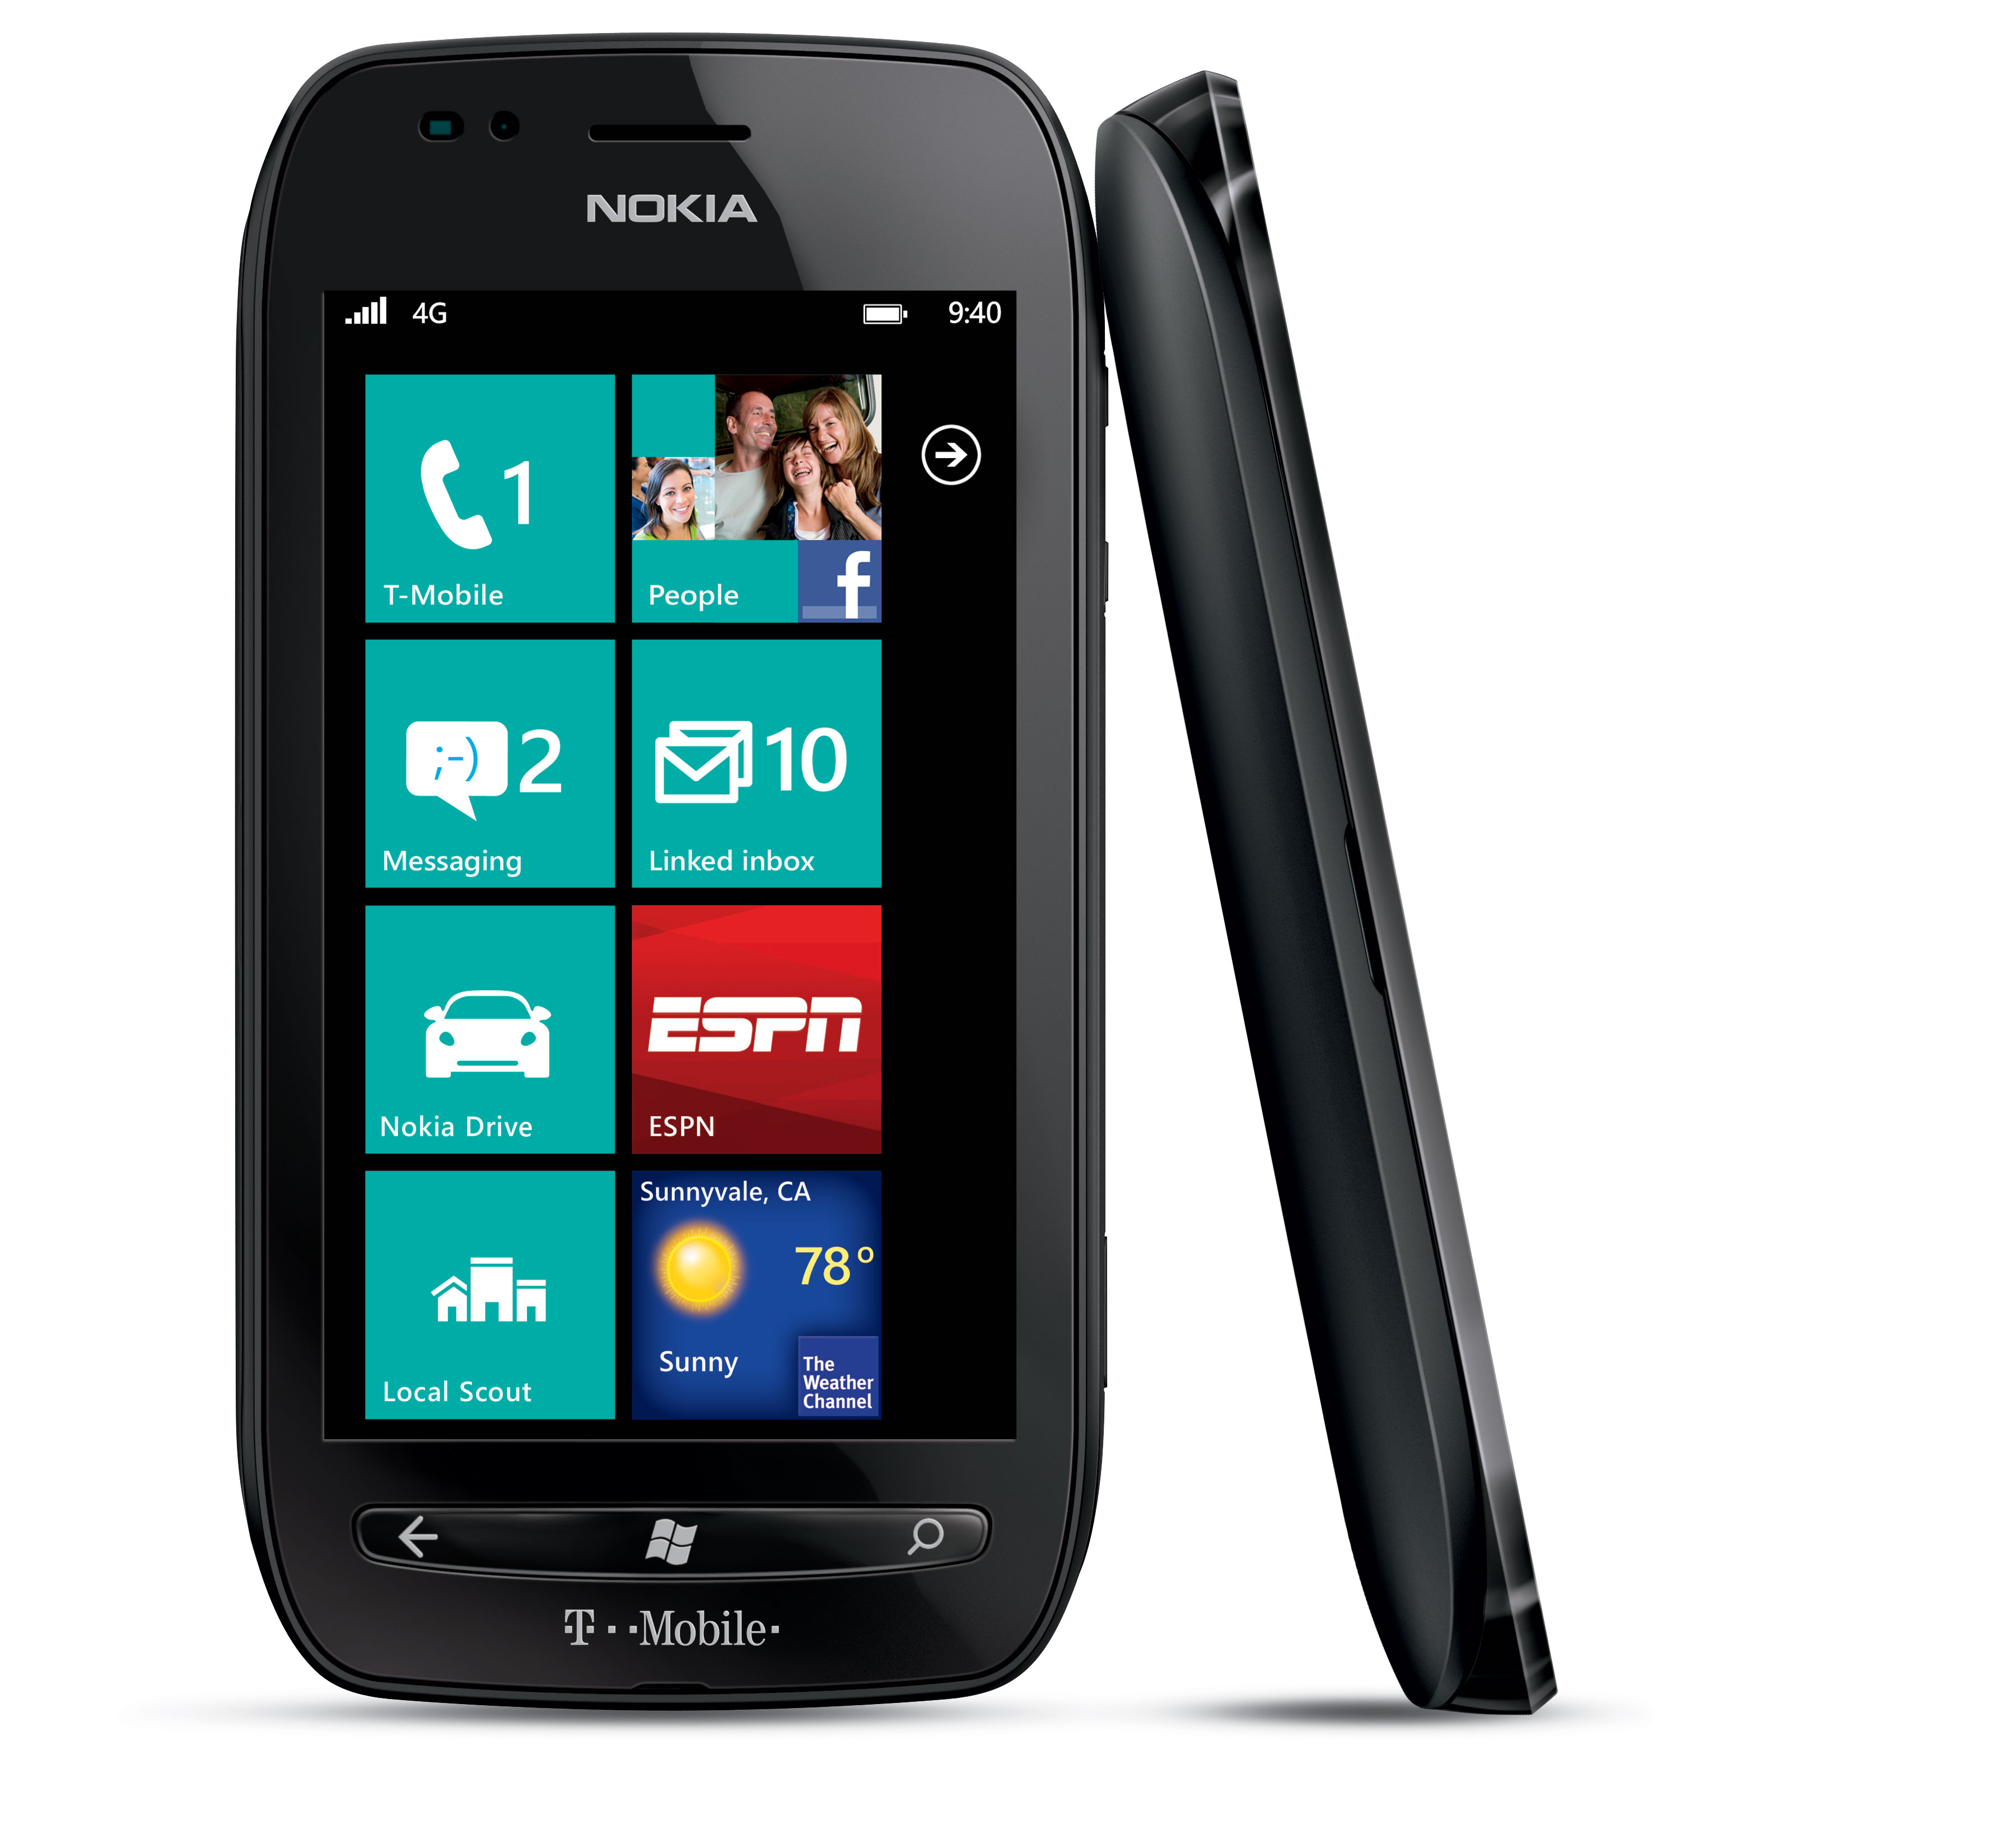 nokia lumia 710 8gb windows 7 smartphone for t mobile black fair condition used cell. Black Bedroom Furniture Sets. Home Design Ideas